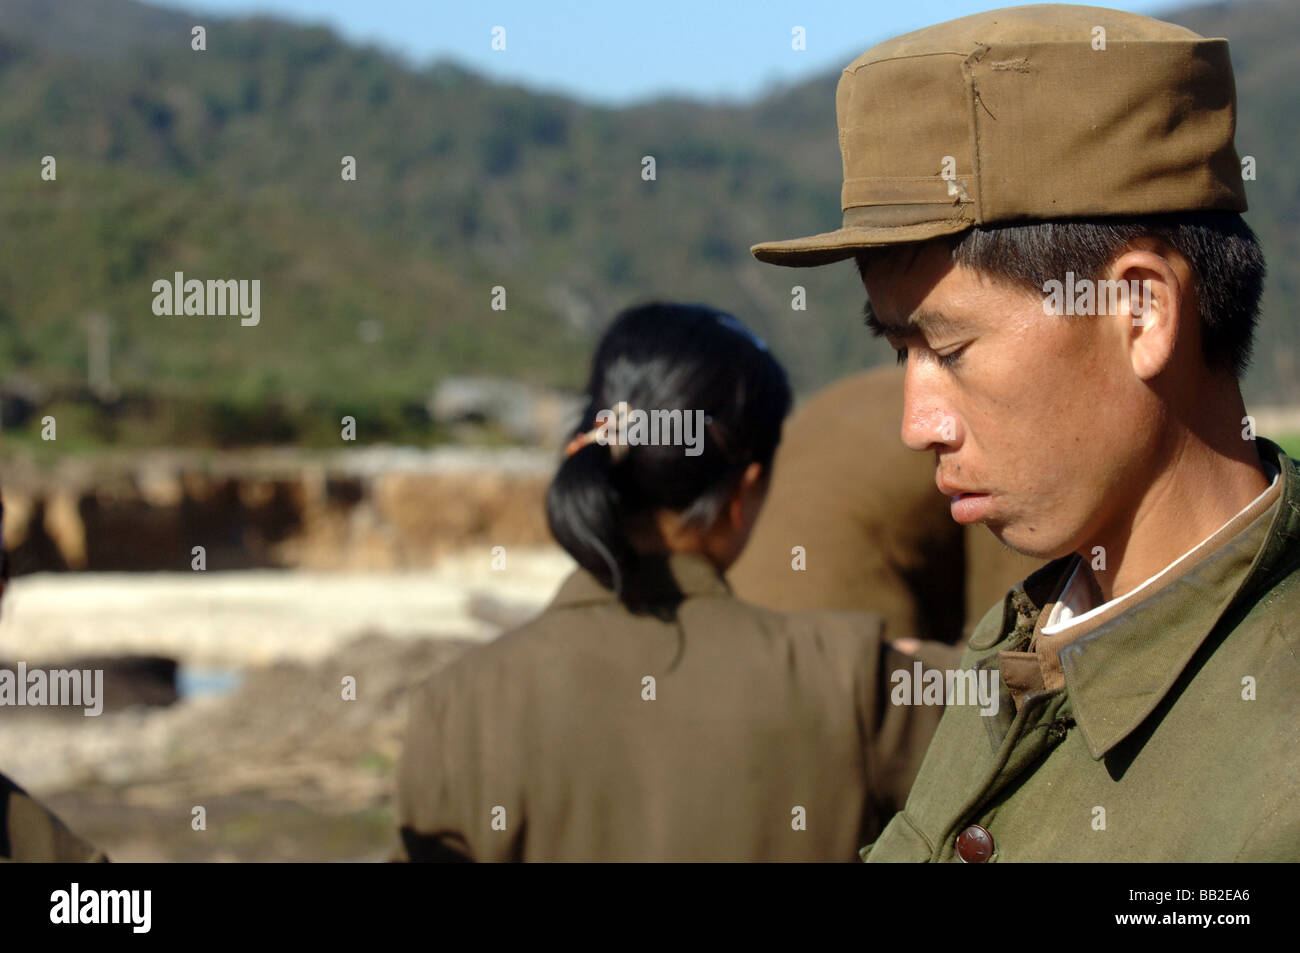 Member of the Peoples Army North Korea - Stock Image